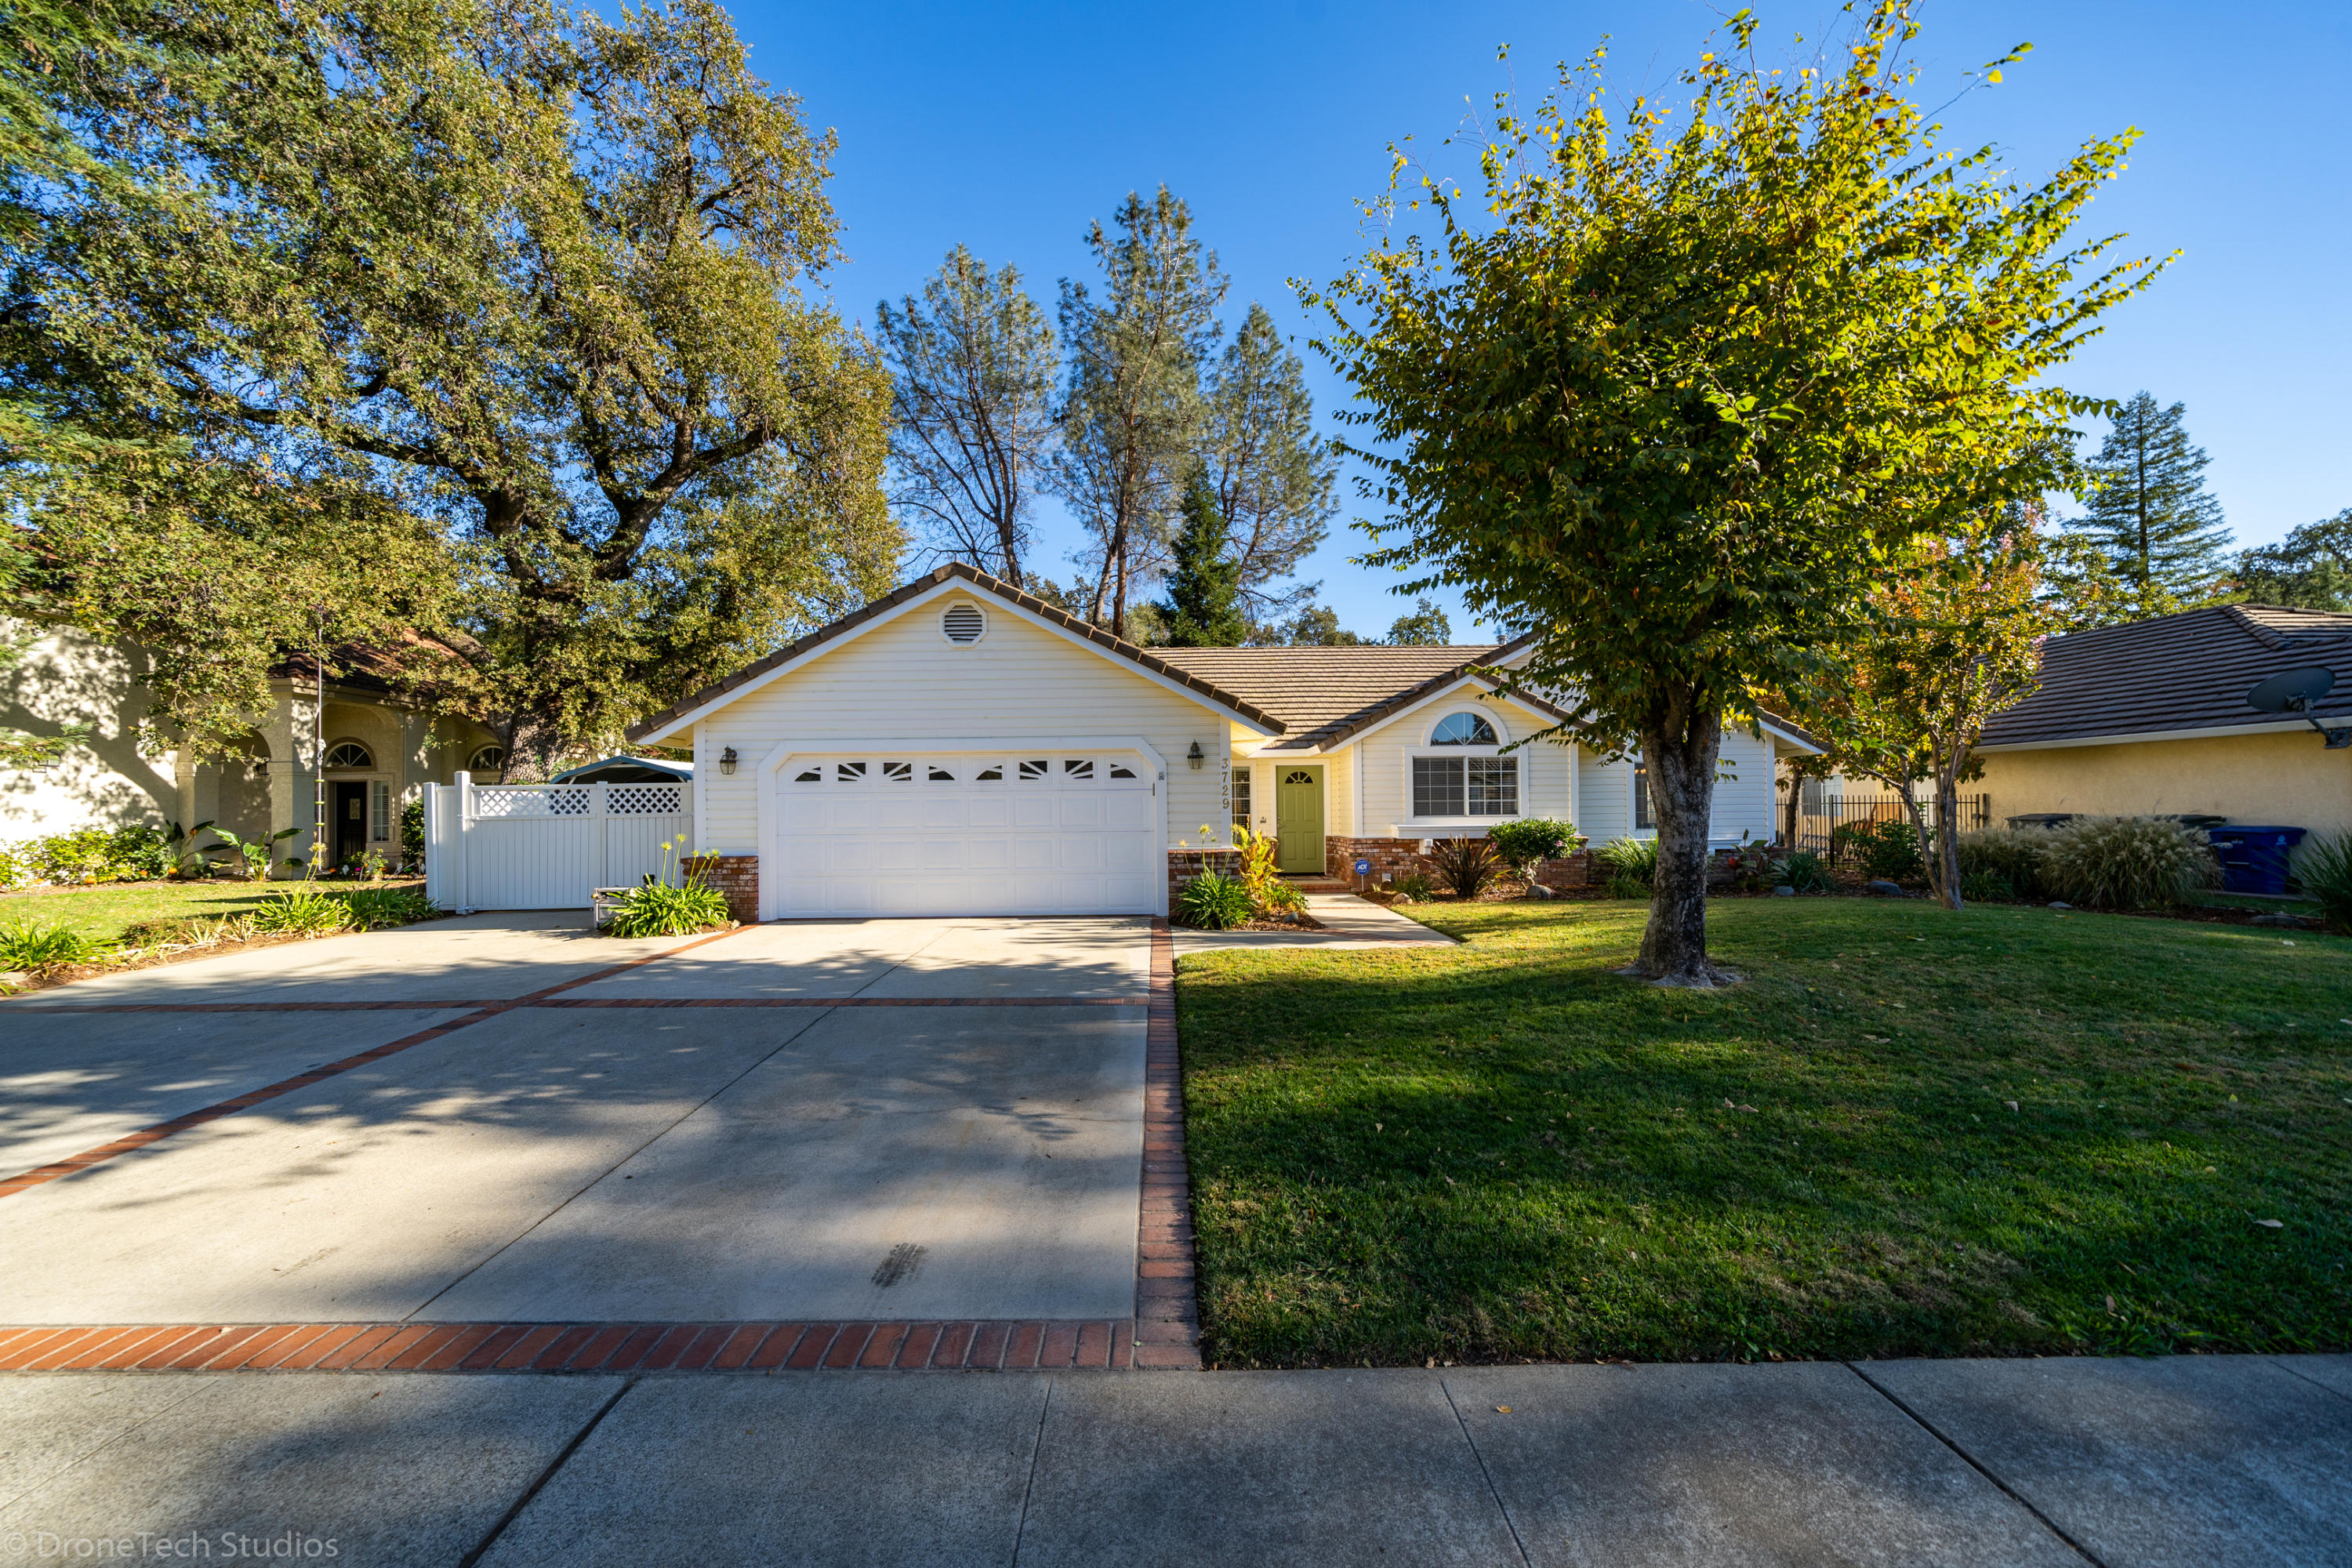 3729 Eagle Pkwy, Redding, CA 96001